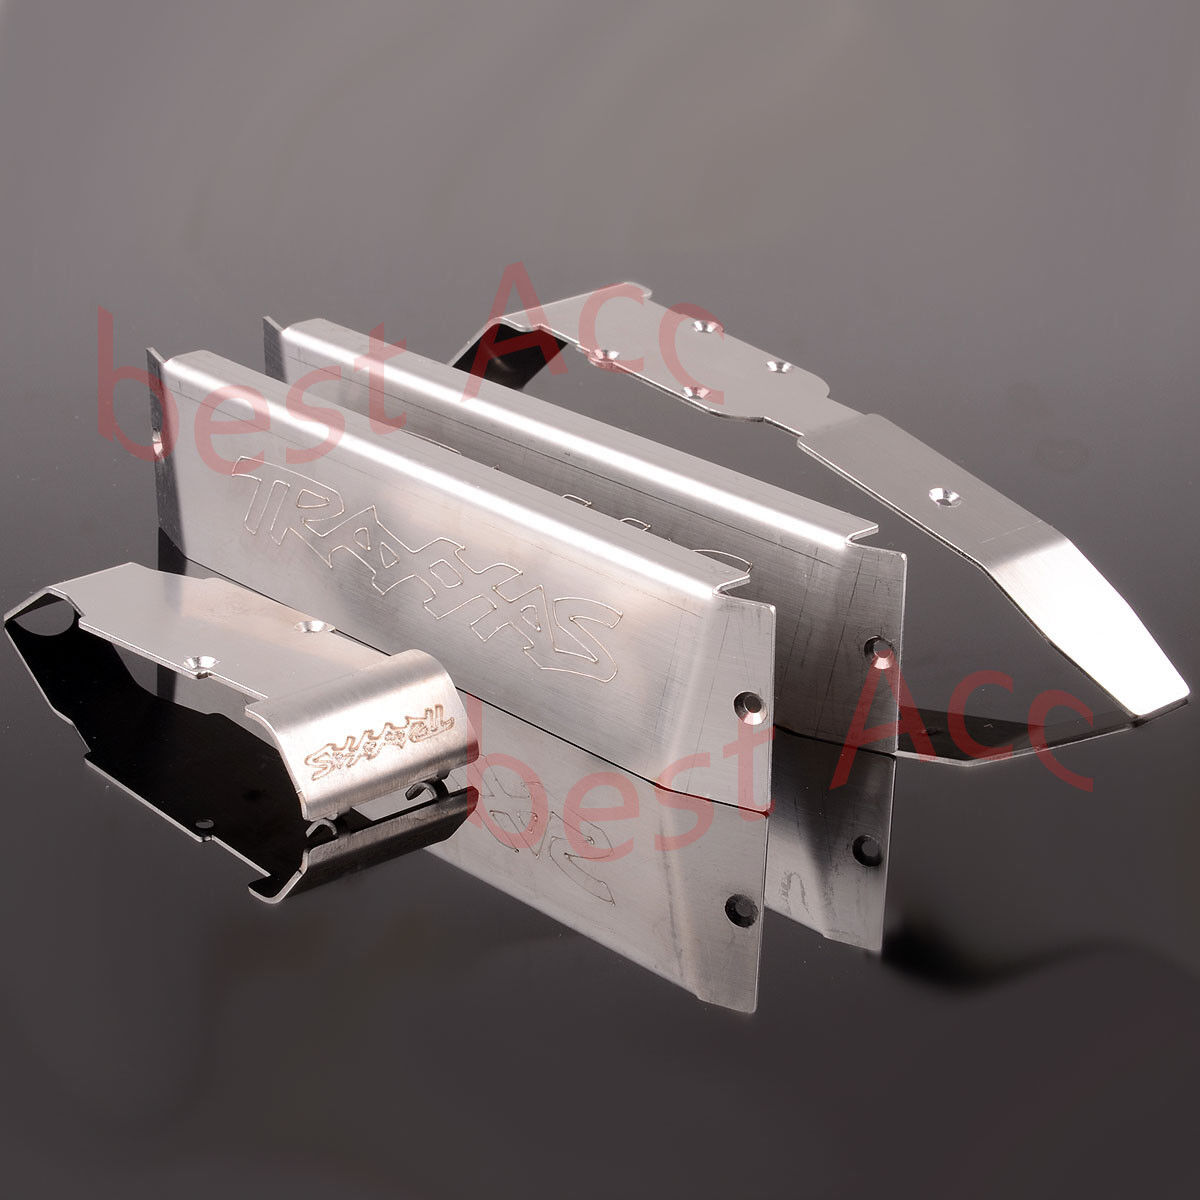 RC 1 10 TRAXXAS RVOPA SUMMIT SUMMIT SUMMIT Stainless Steel Chassis Armor Front Rear Skid Plate d51326